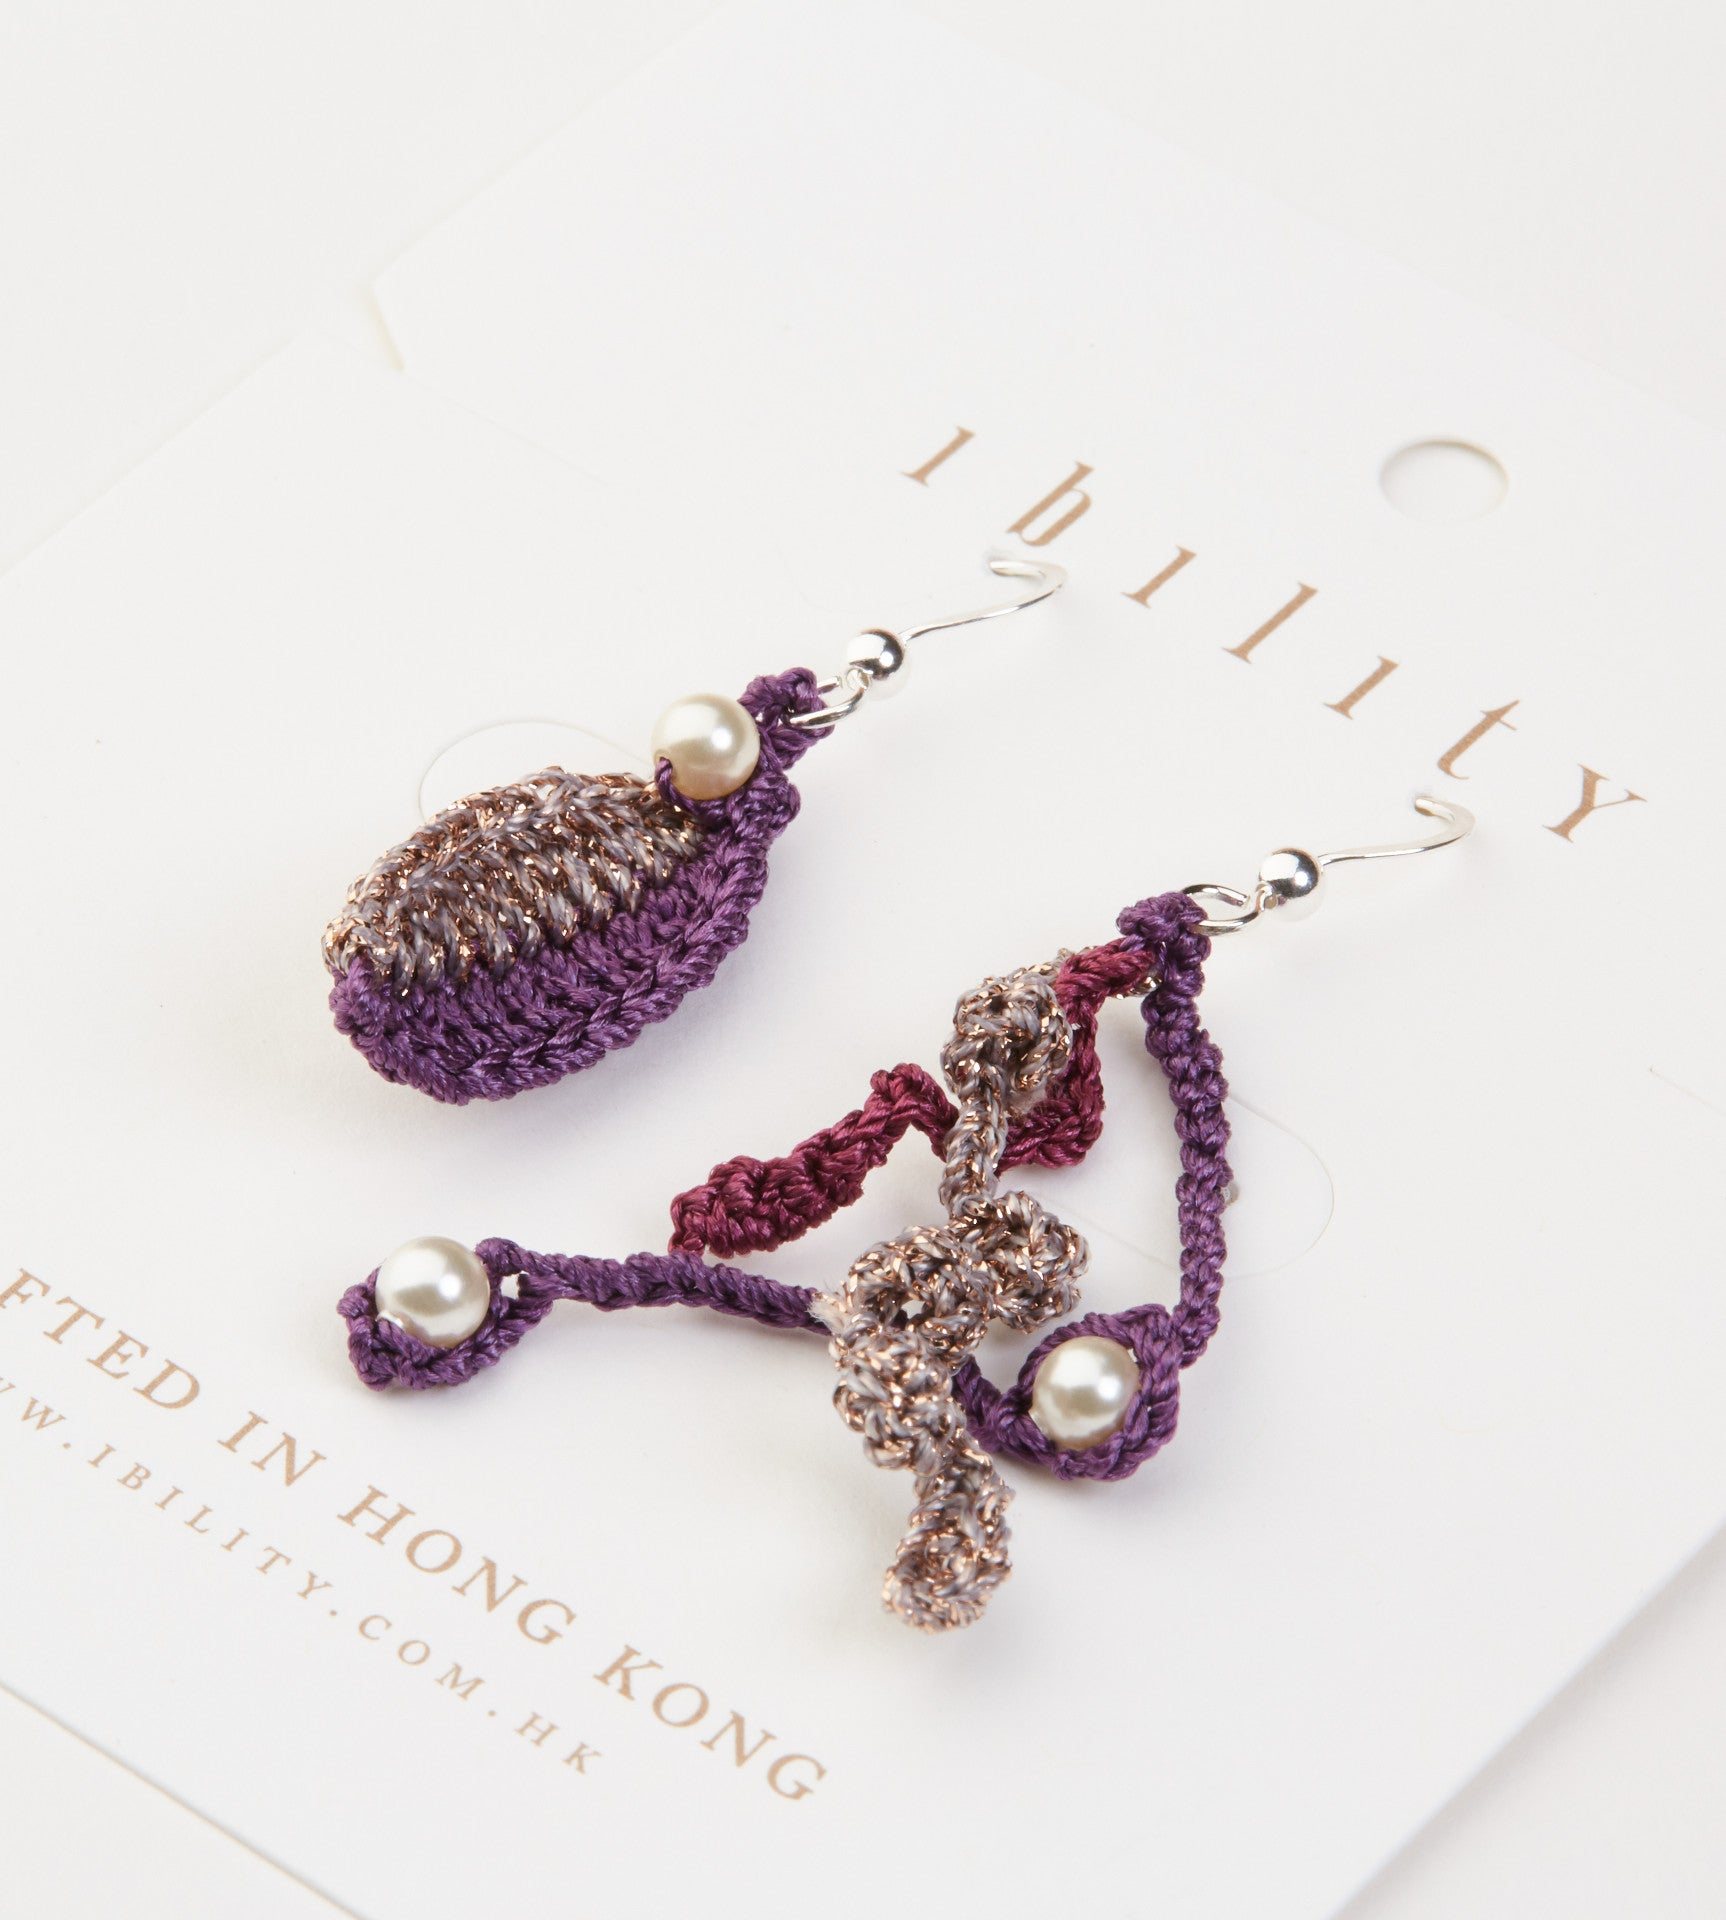 The Golden Fall, Crochet Leaf Earrings with Pearls (Grapes)